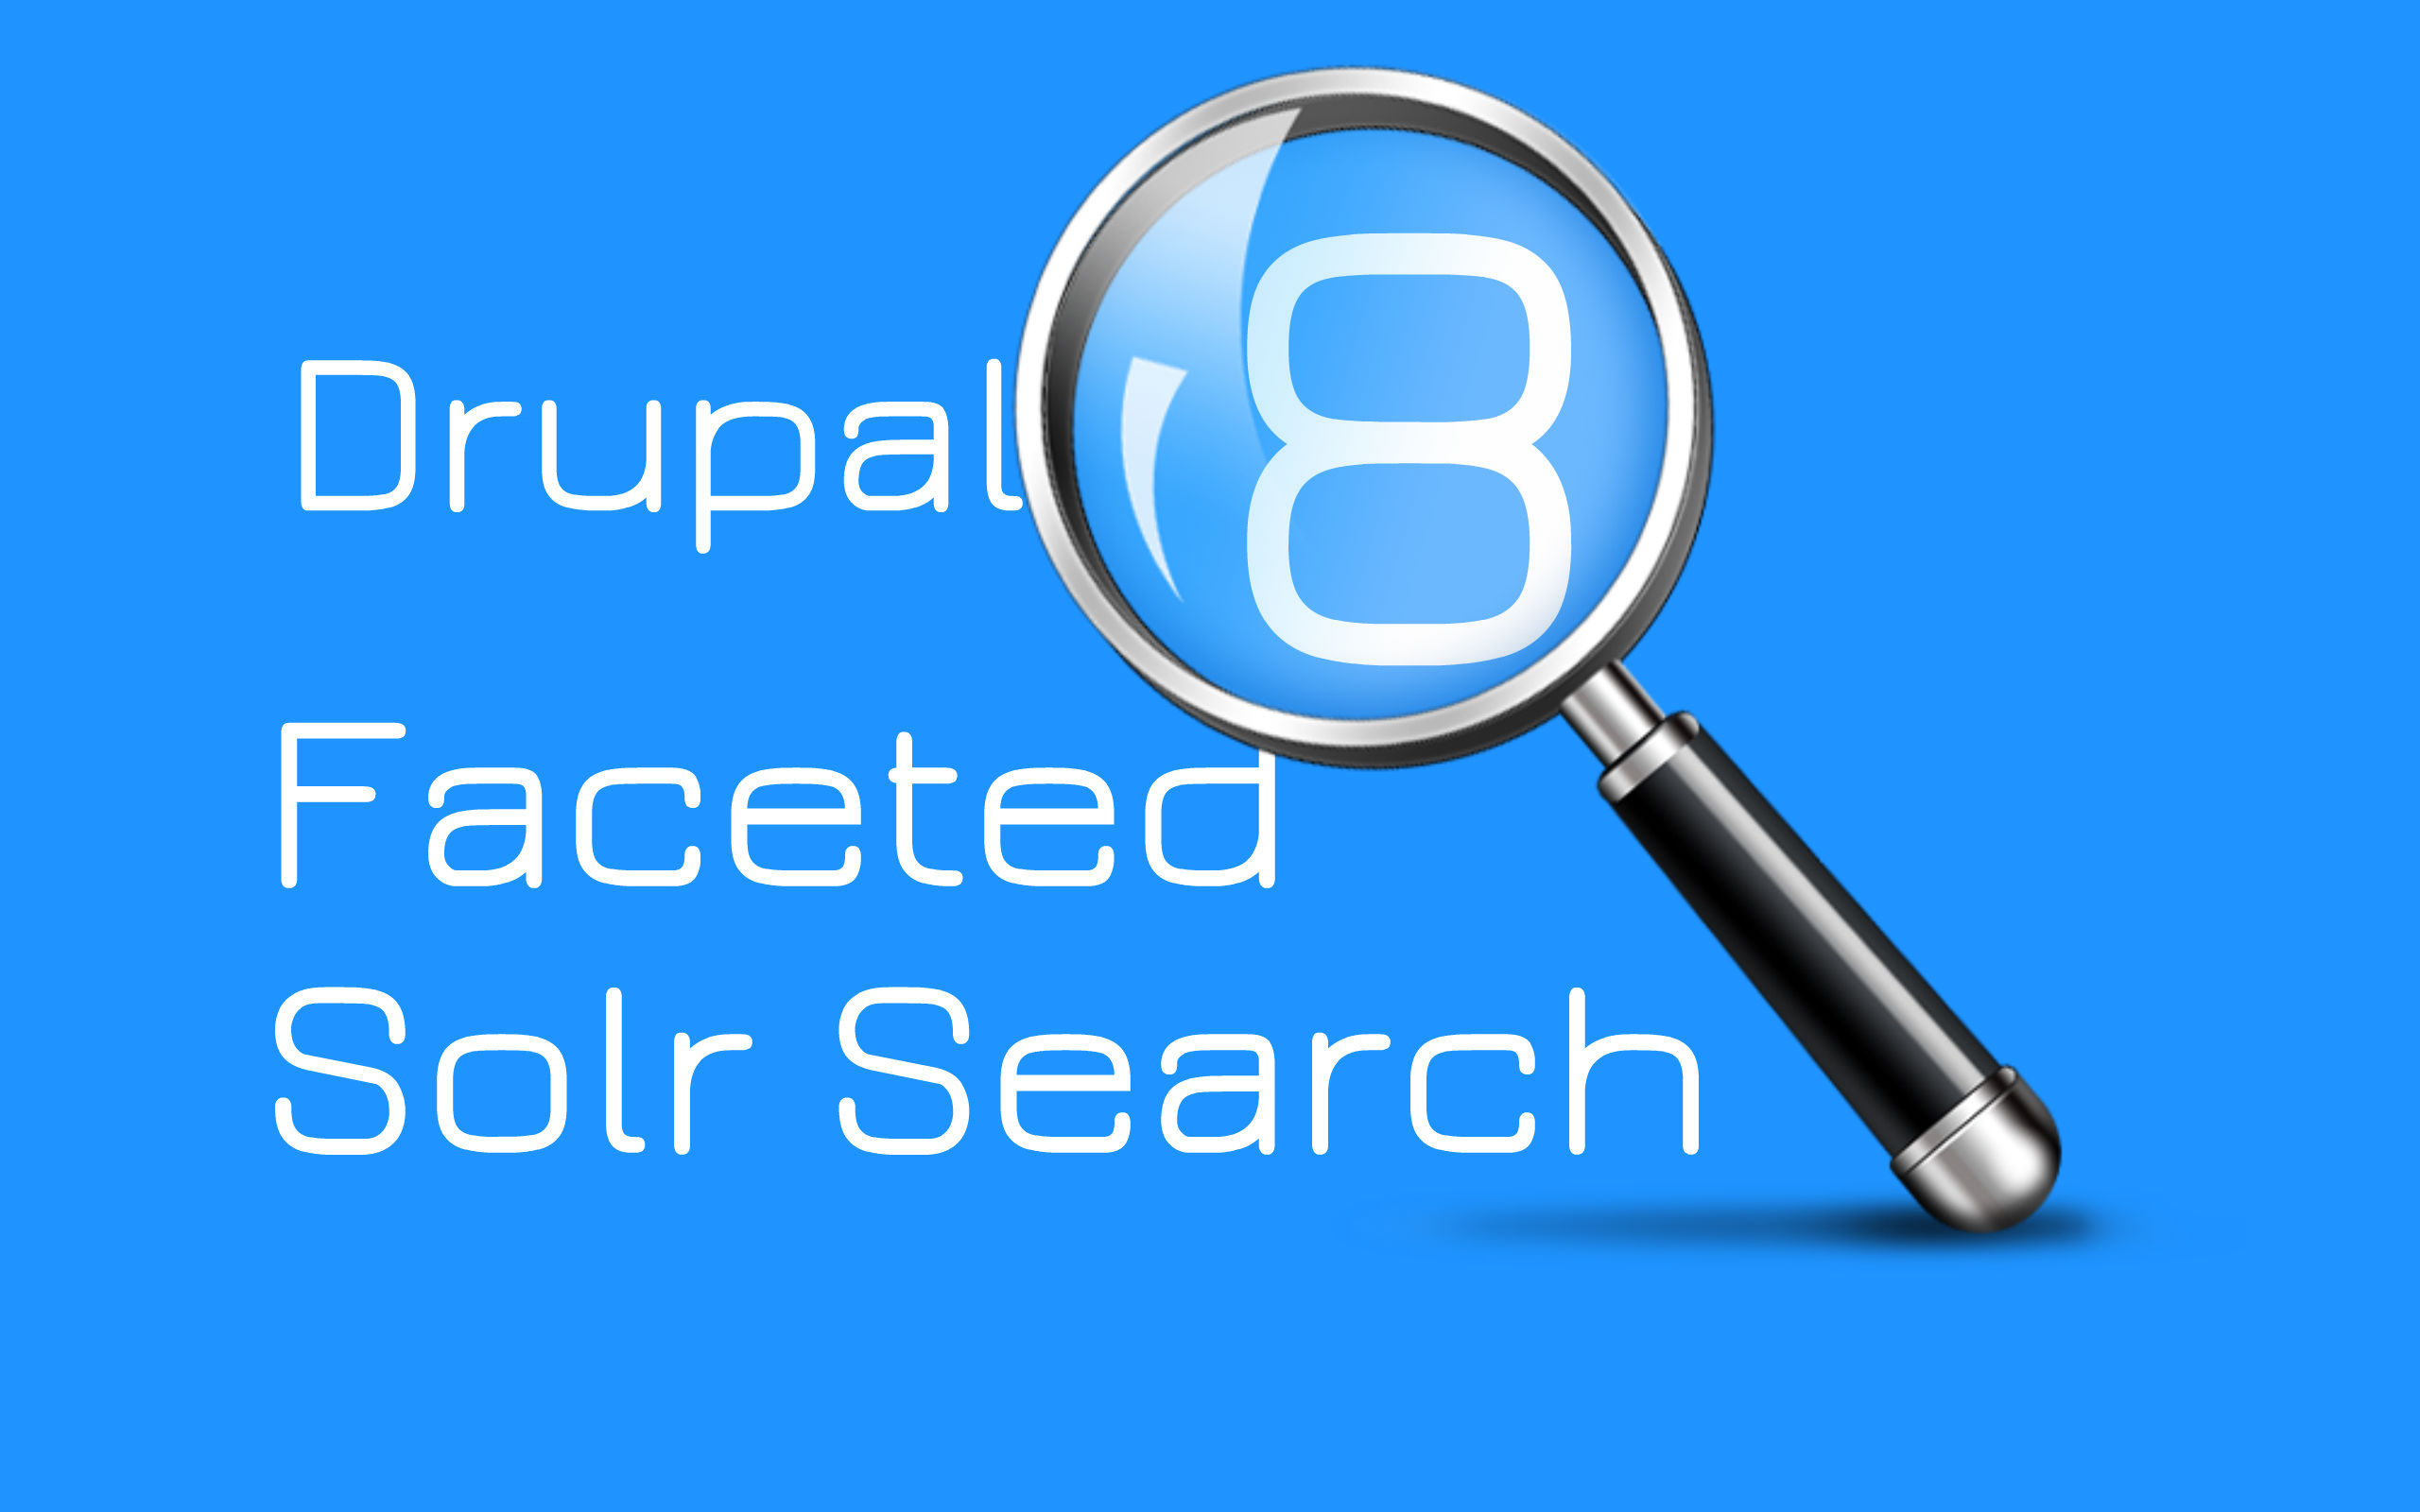 Implement Faceted search with Solr in Drupal 8?